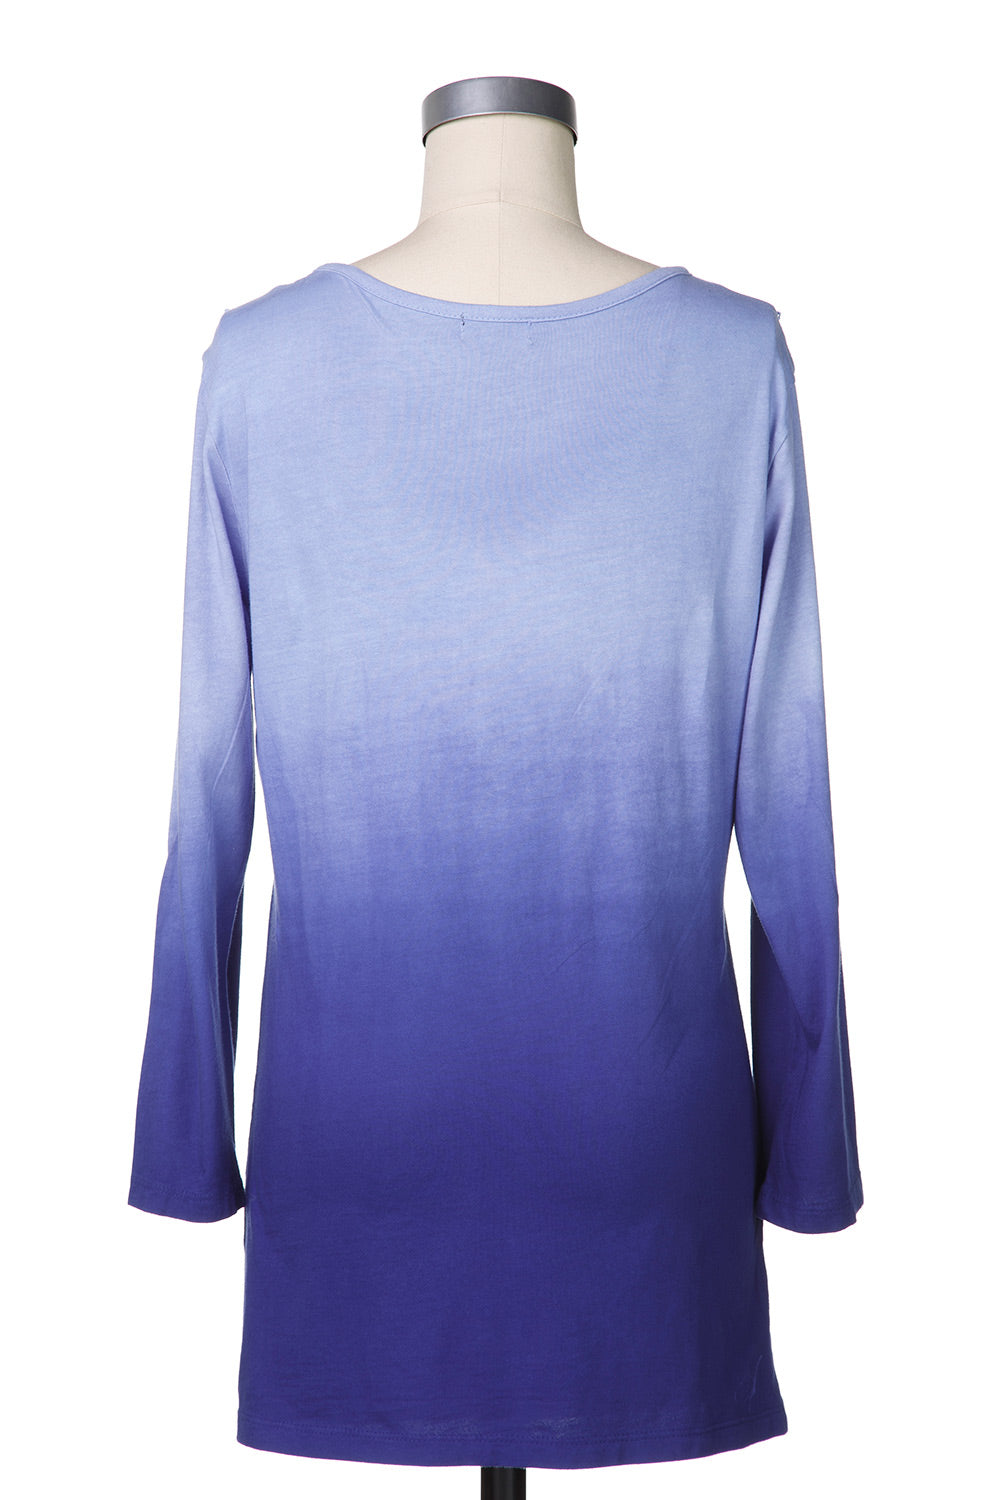 Type 2 Blue Ombre Top